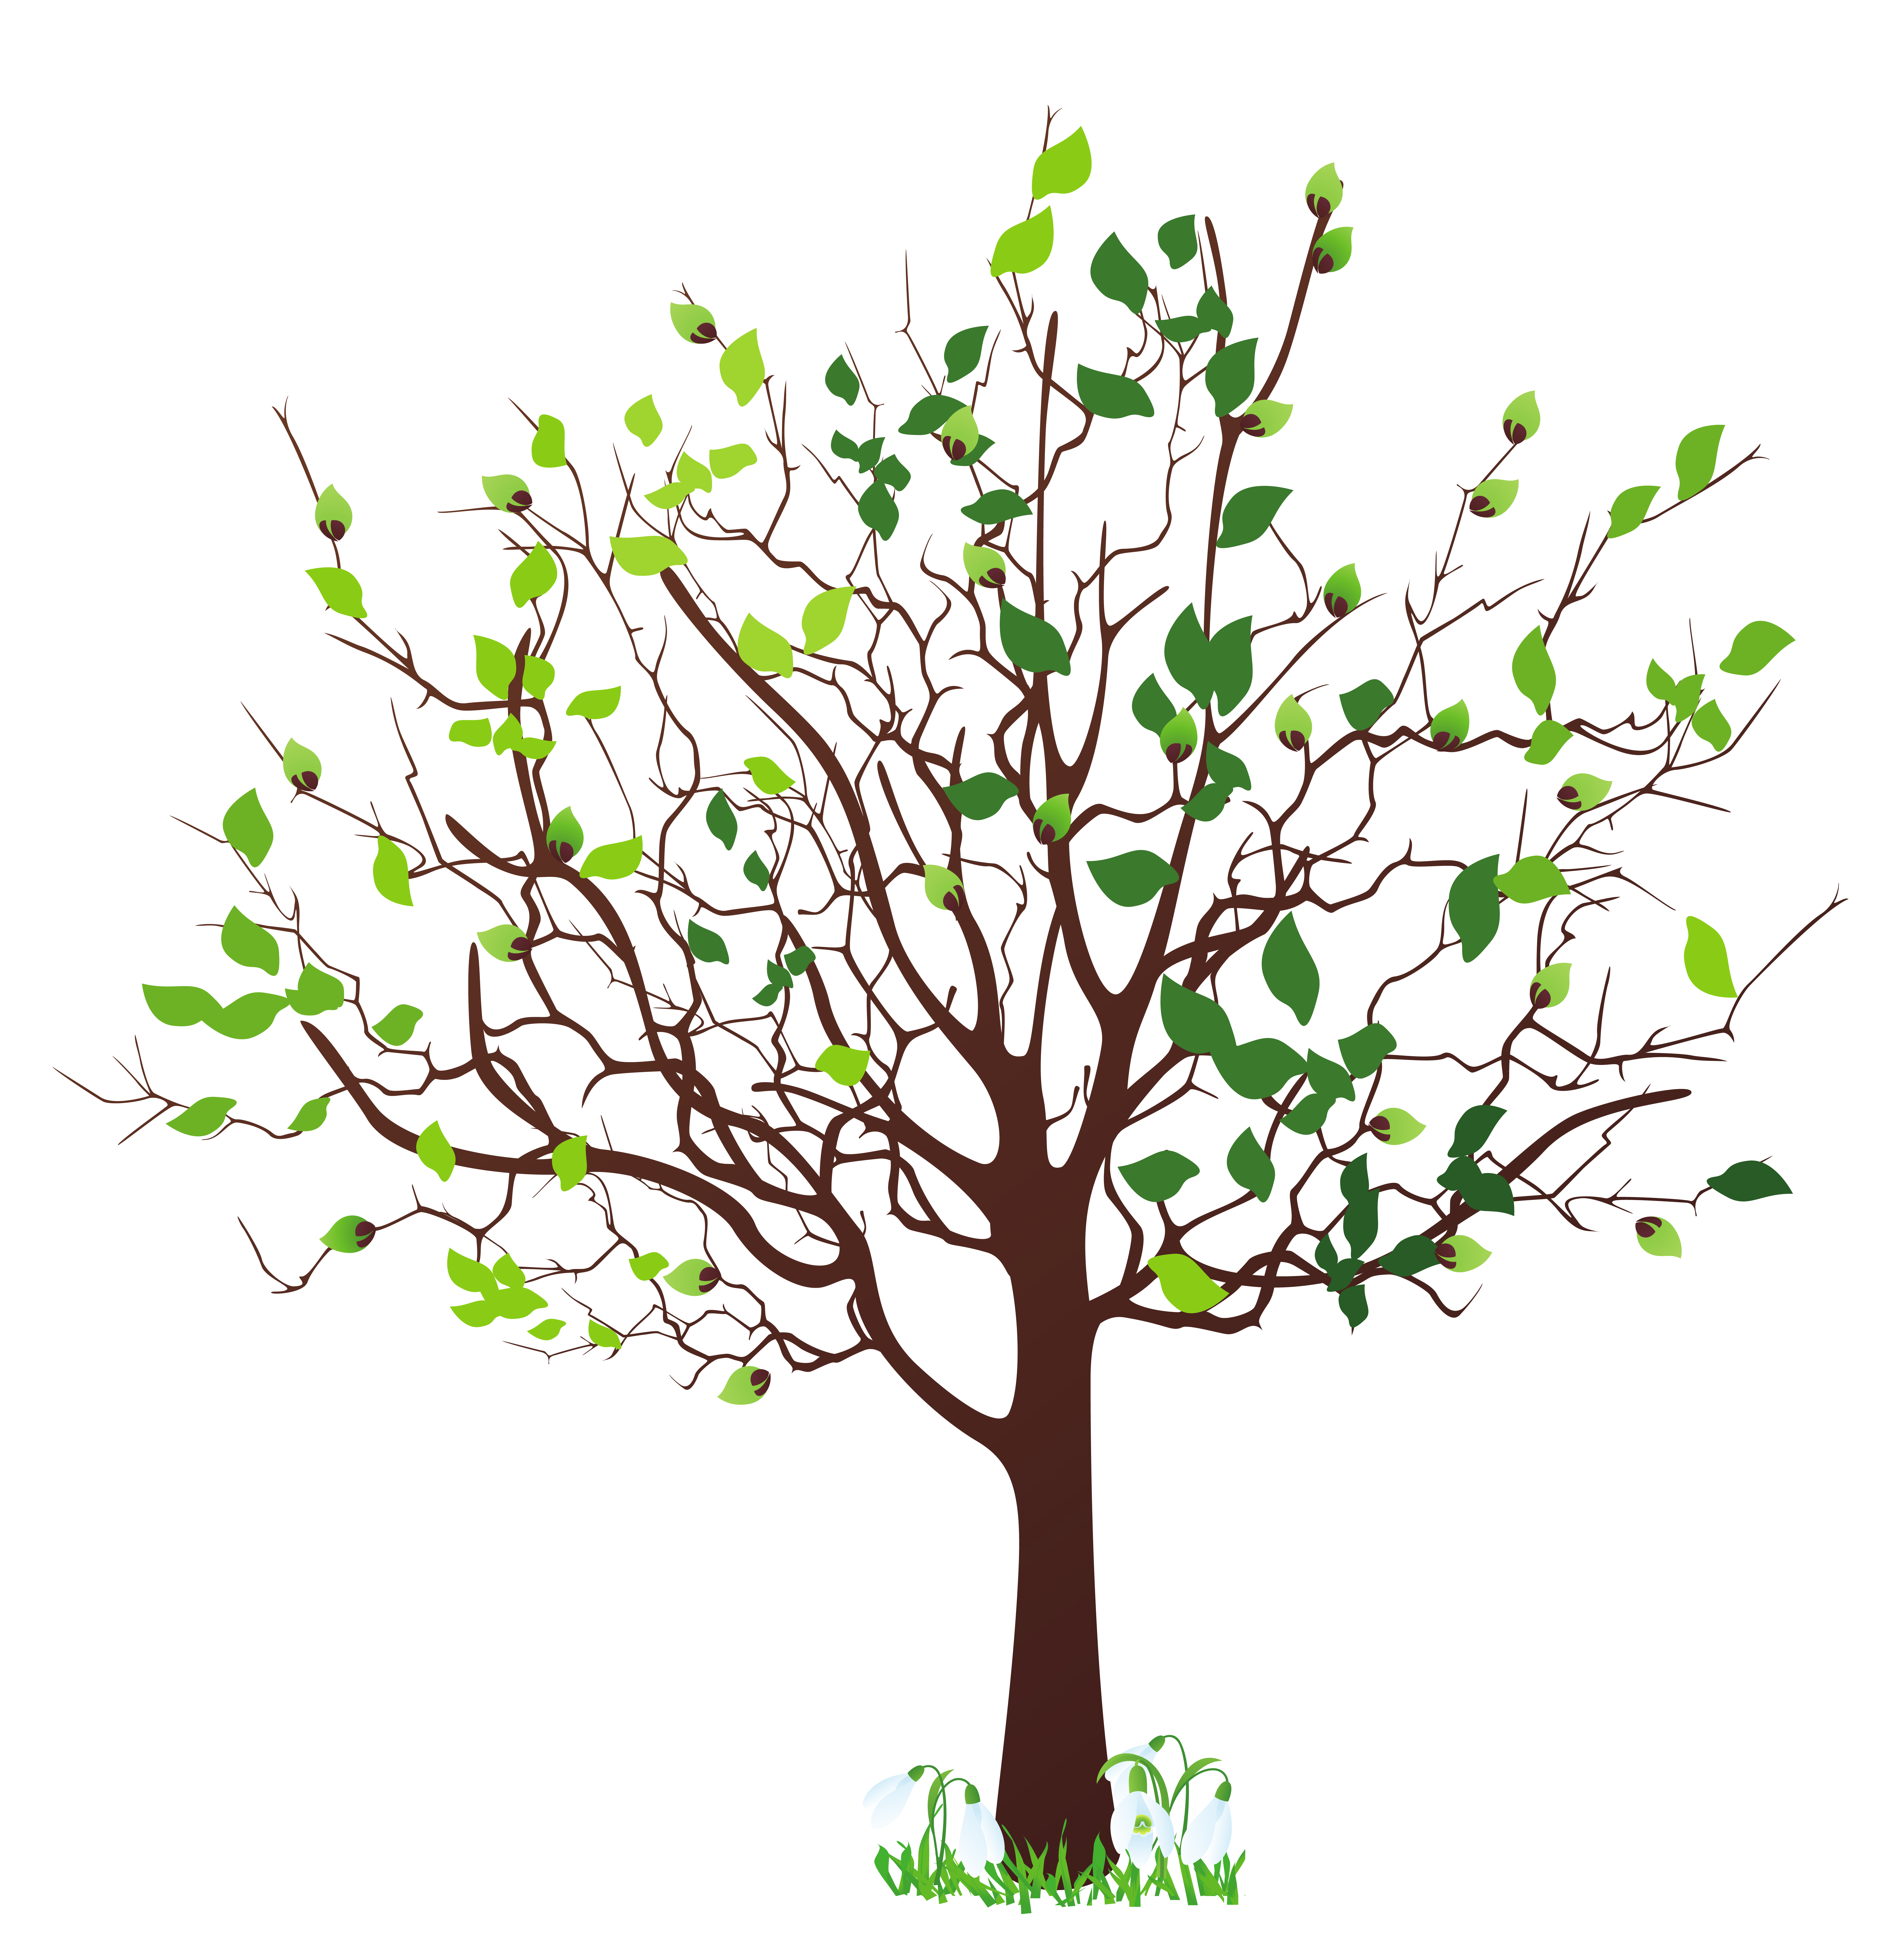 Free clipart trees images clip art freeuse Free Free Tree Images, Download Free Clip Art, Free Clip Art on ... clip art freeuse